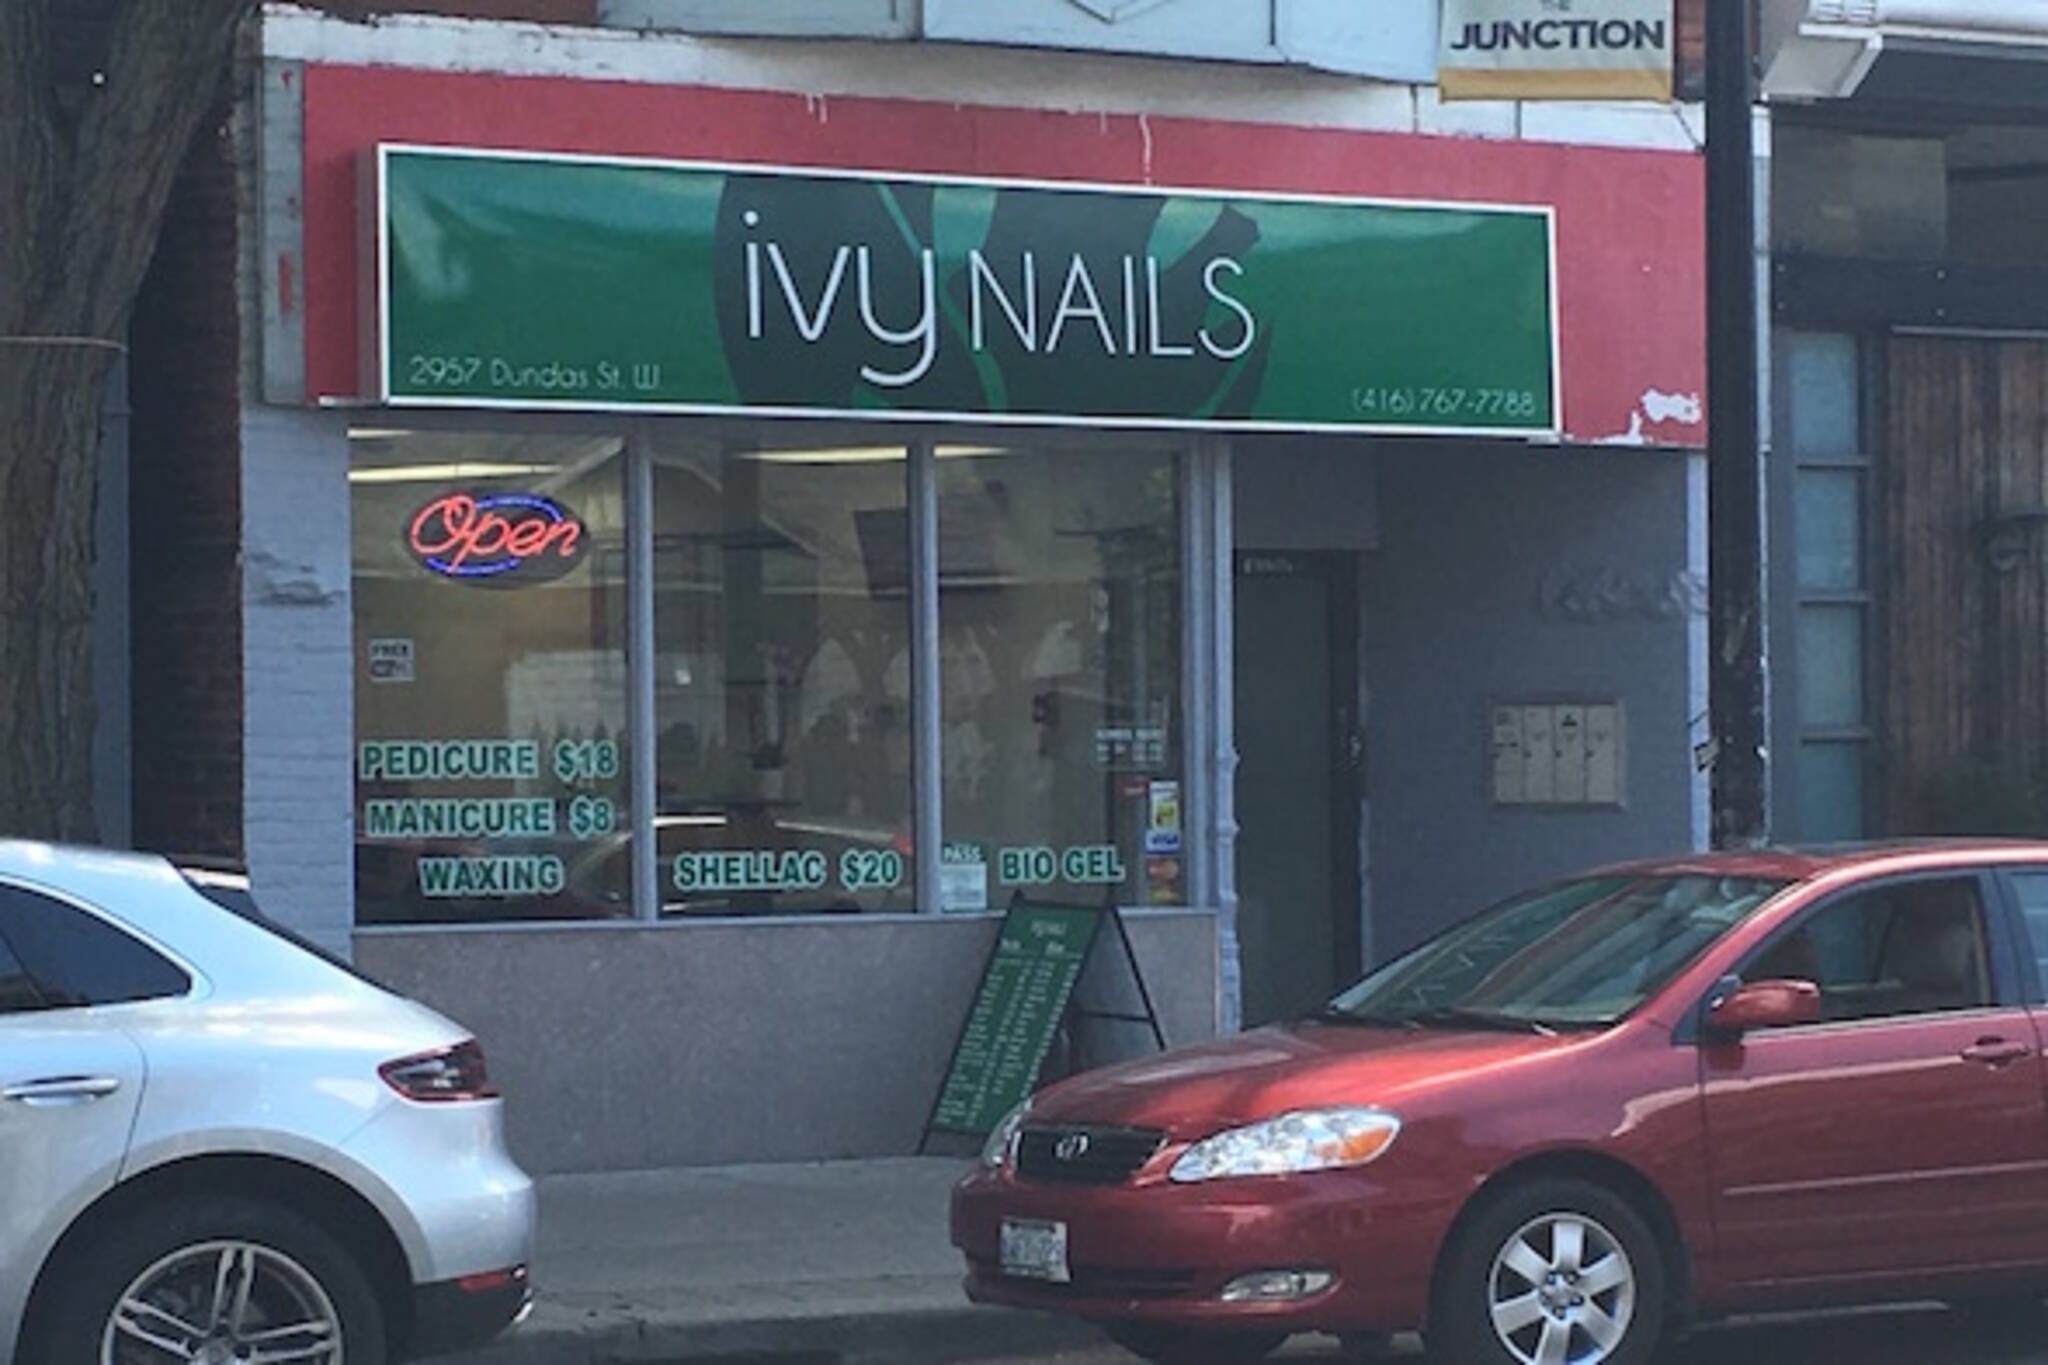 Ivy Nails - blogTO - Toronto